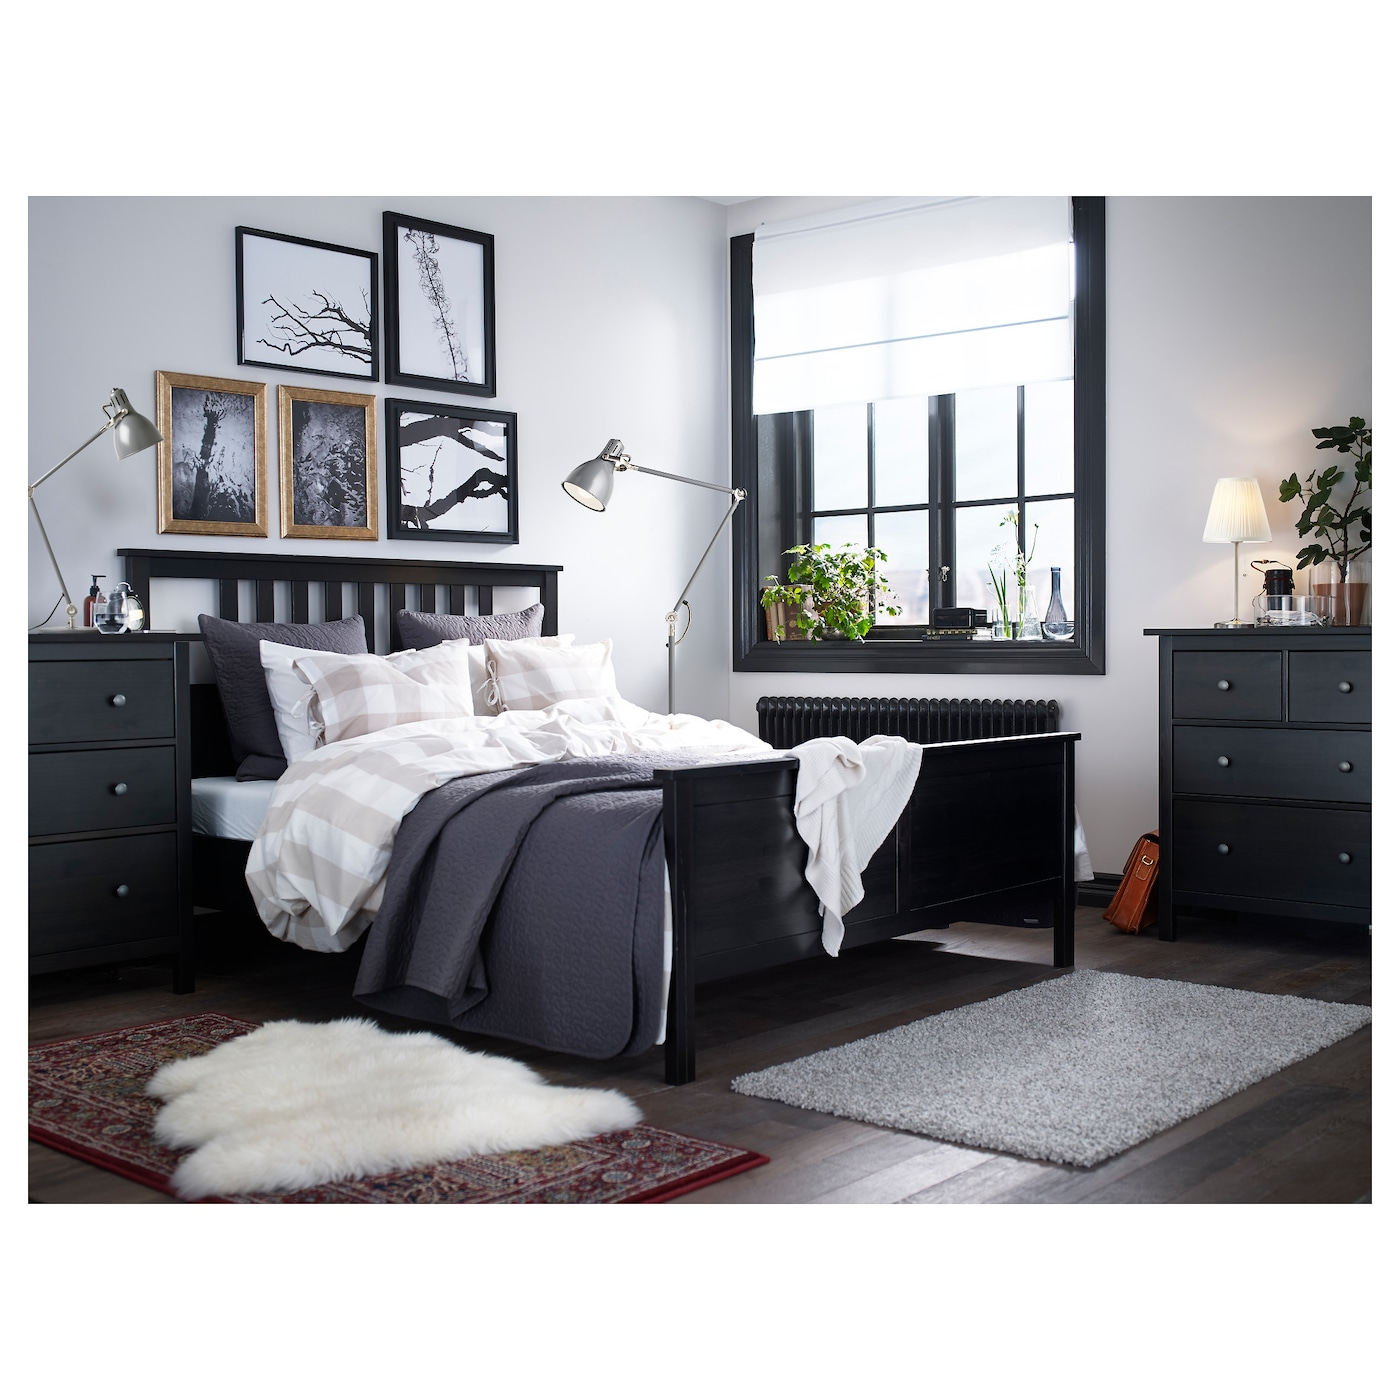 hemnes cadre de lit brun noir 160 x 200 cm ikea. Black Bedroom Furniture Sets. Home Design Ideas